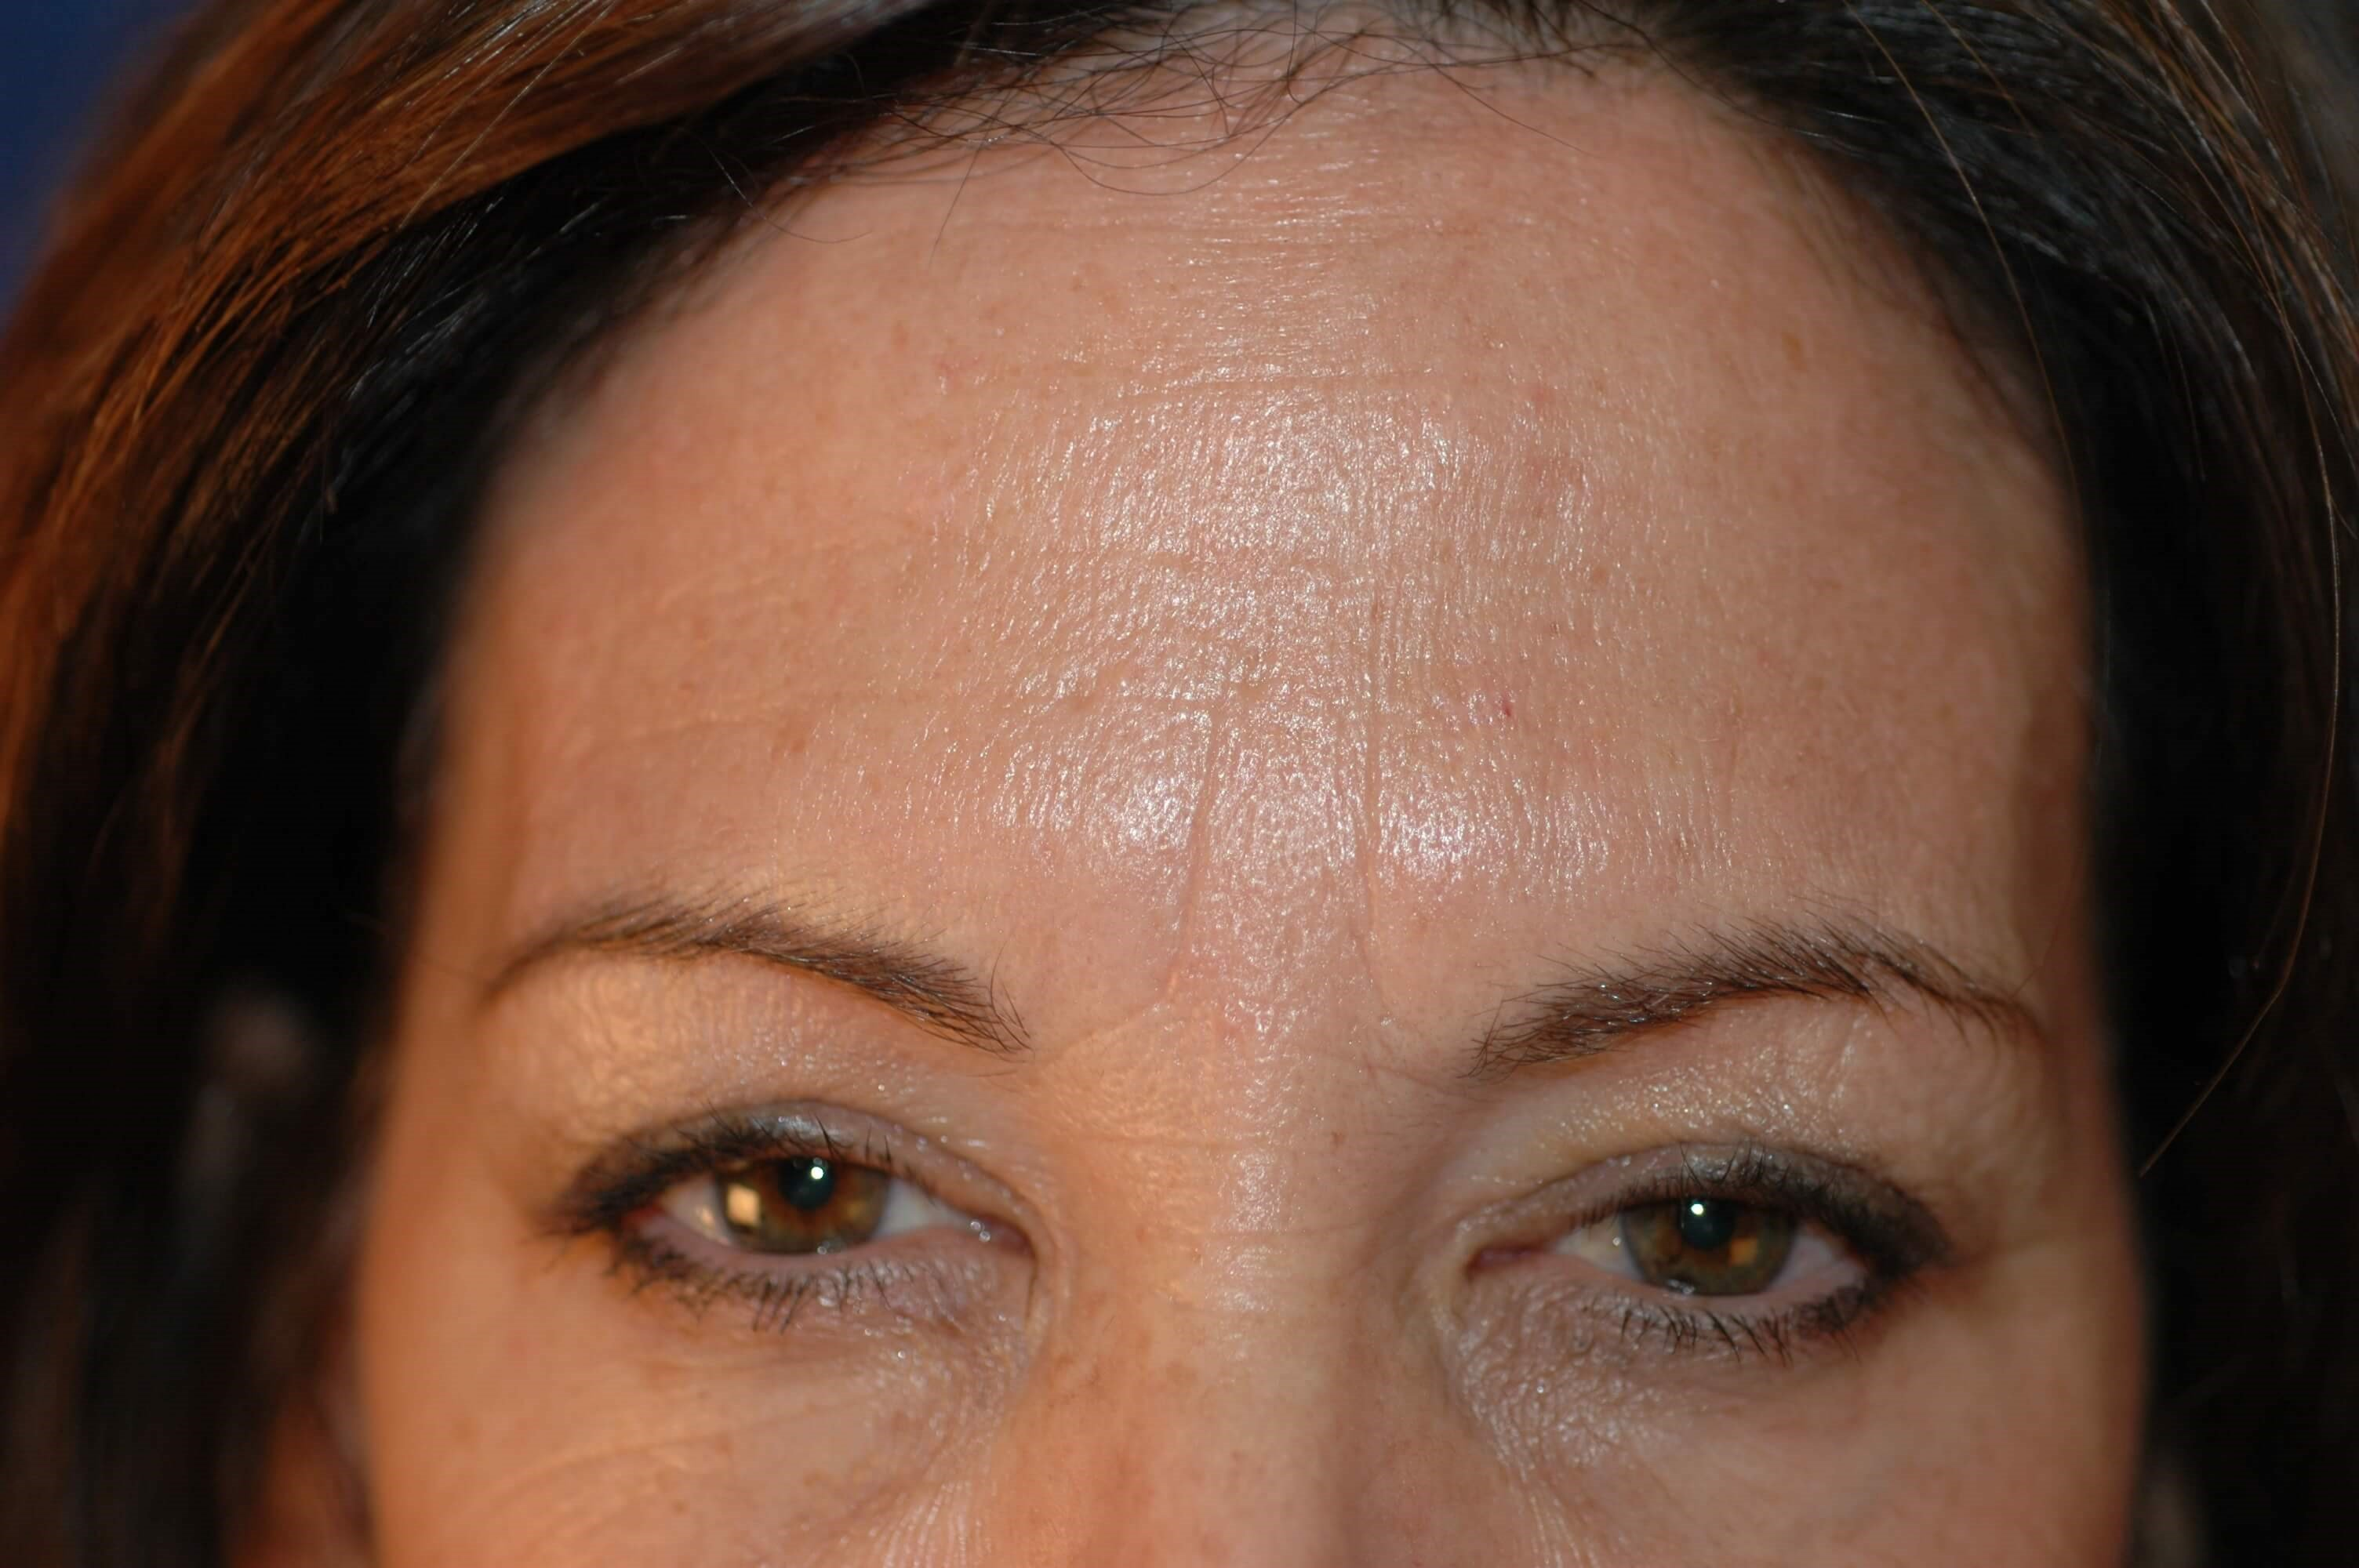 Newport Beach Botox Front View After